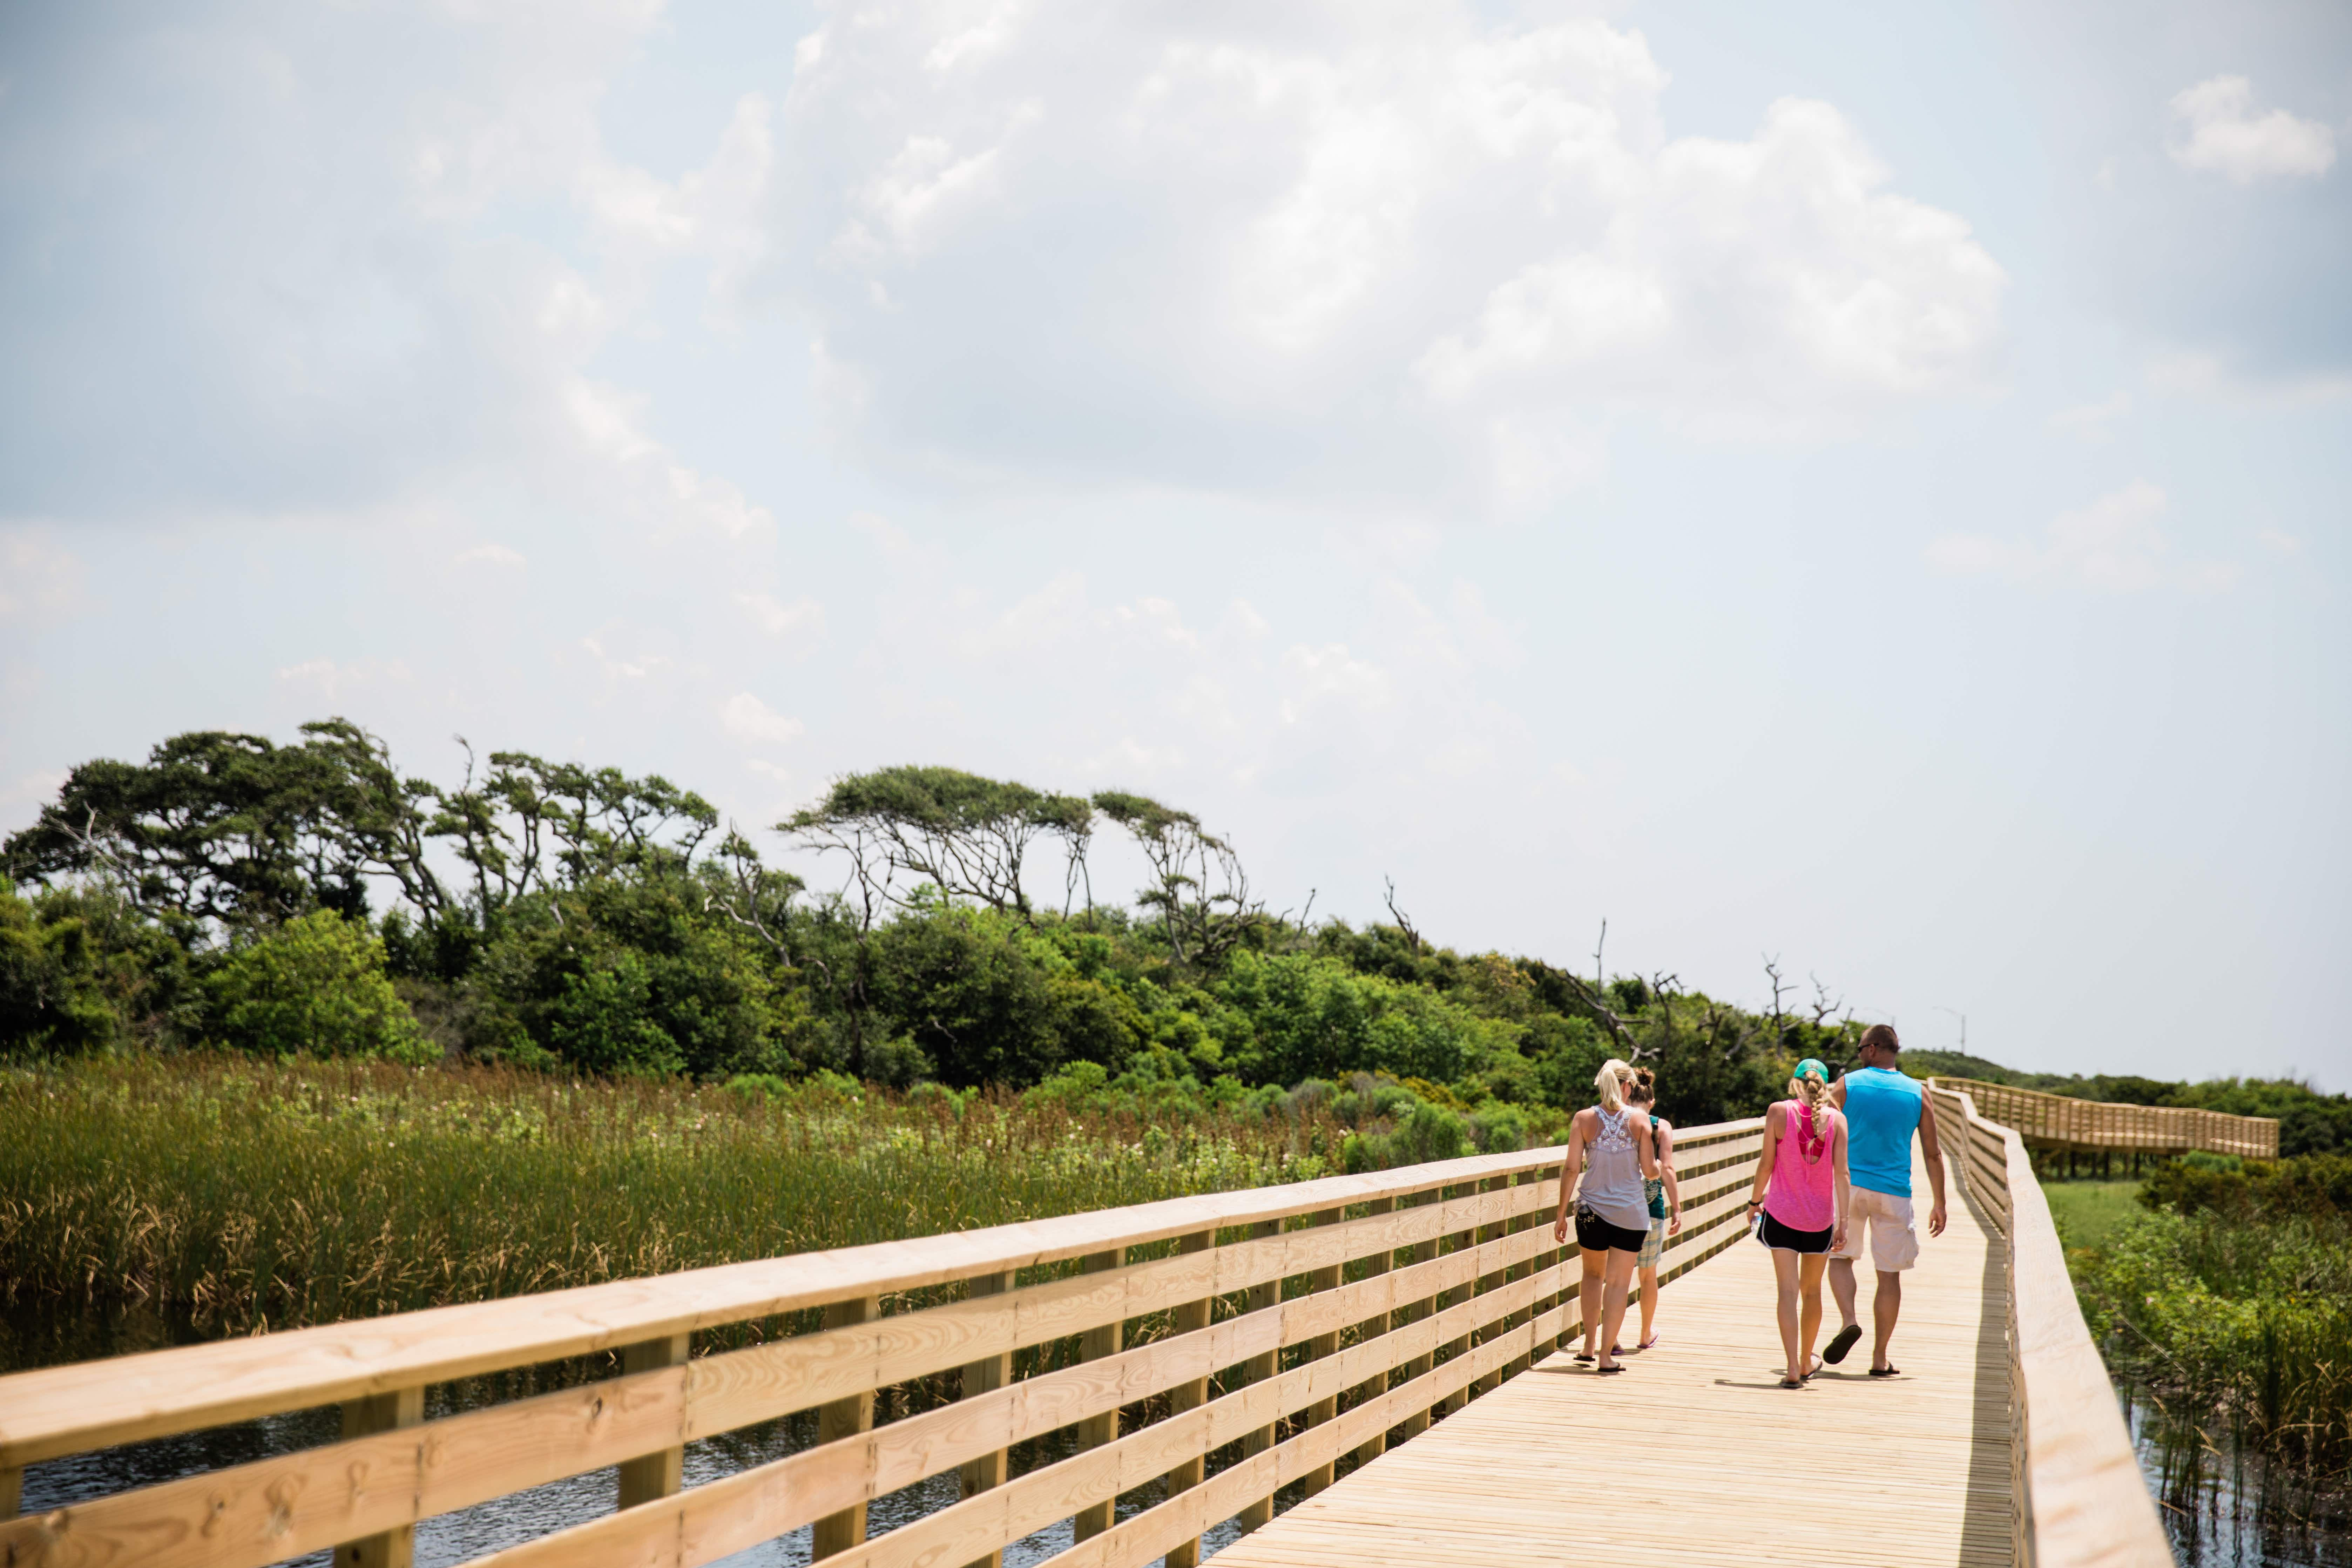 Visitors can traverse the park's 28 miles of trails © Gulf State Park